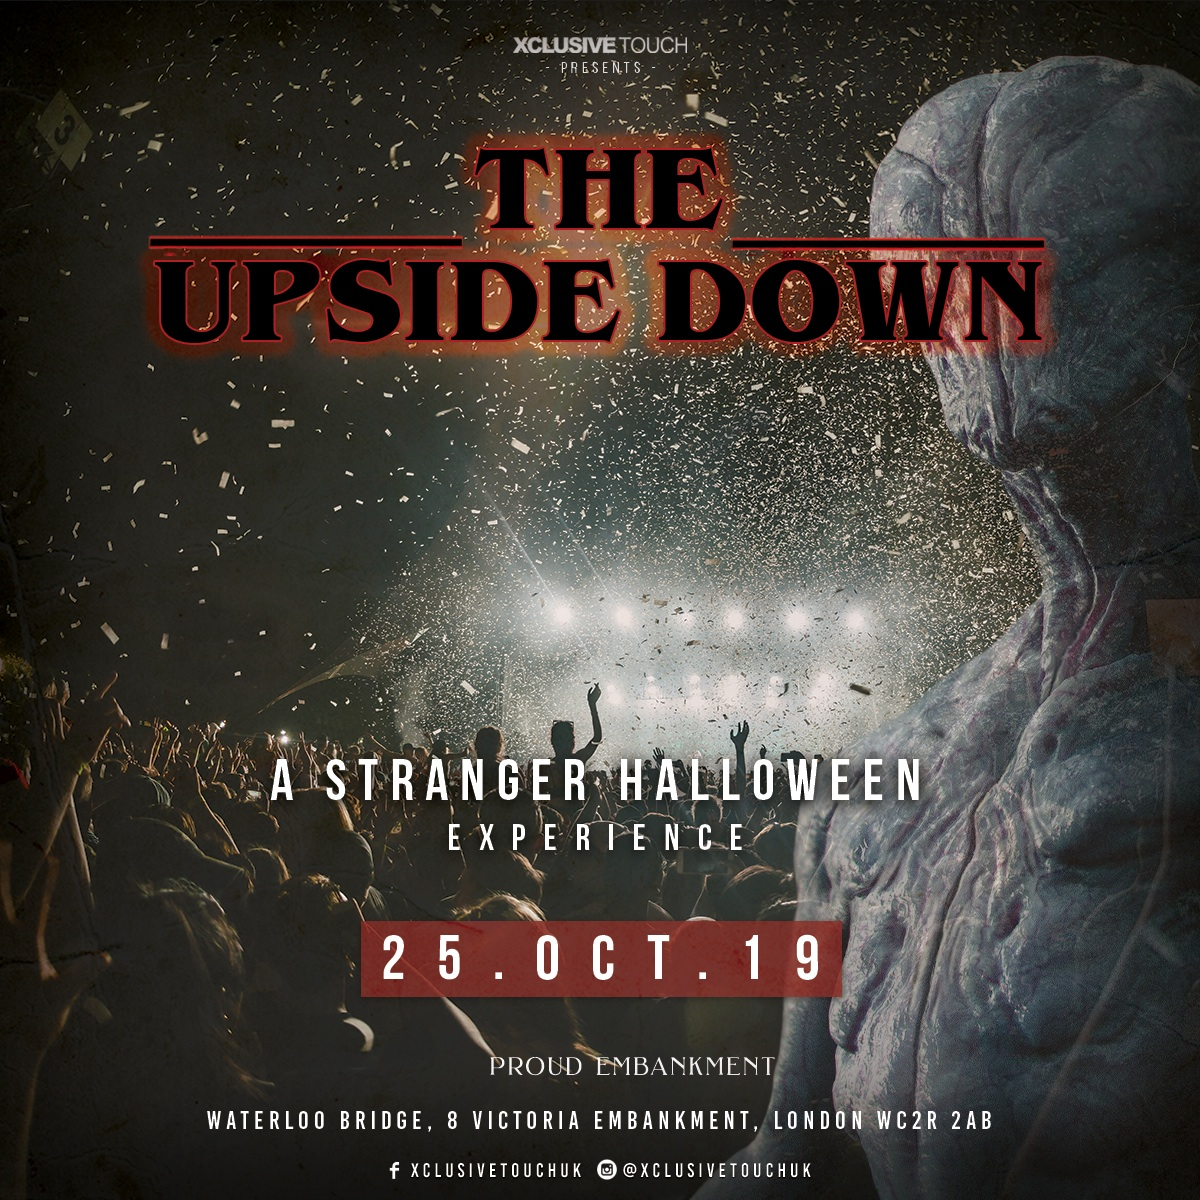 The Upside Down - A Stranger Halloween Experience